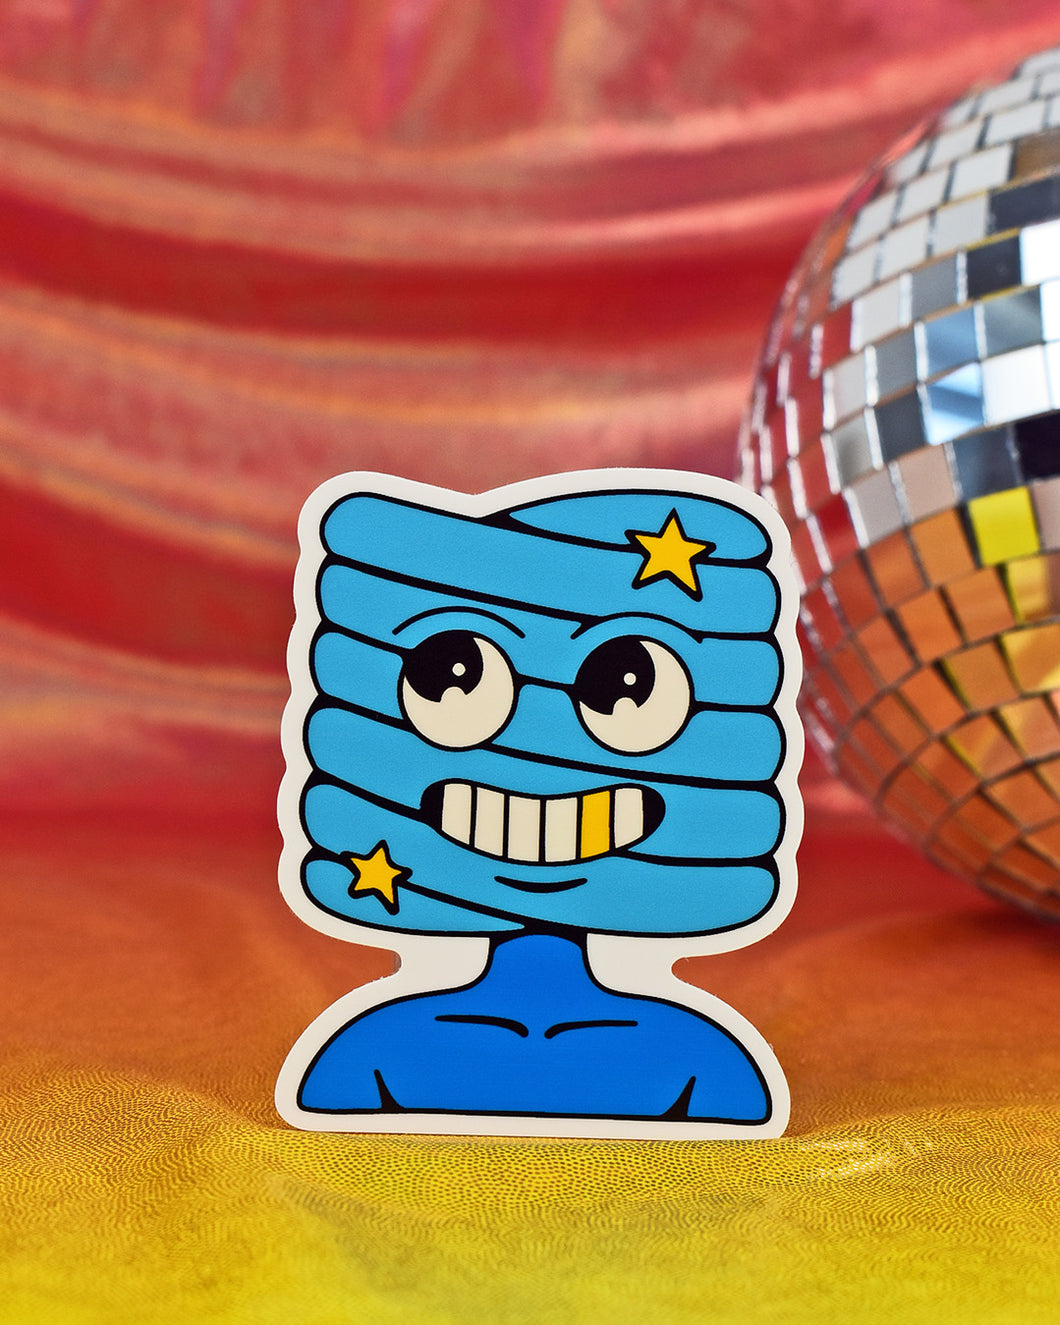 Sheepishly handsome or devilish deviant, you decide. From the twisted creativity that lives in the mind of his creator, Crocodile Jackson., this vinyl sticker features a blue creature with a stacked spiral face featuring round happy eyes, a large grin with 1 gold tooth, and 2 yellow stars. Character is shown from the neck up.